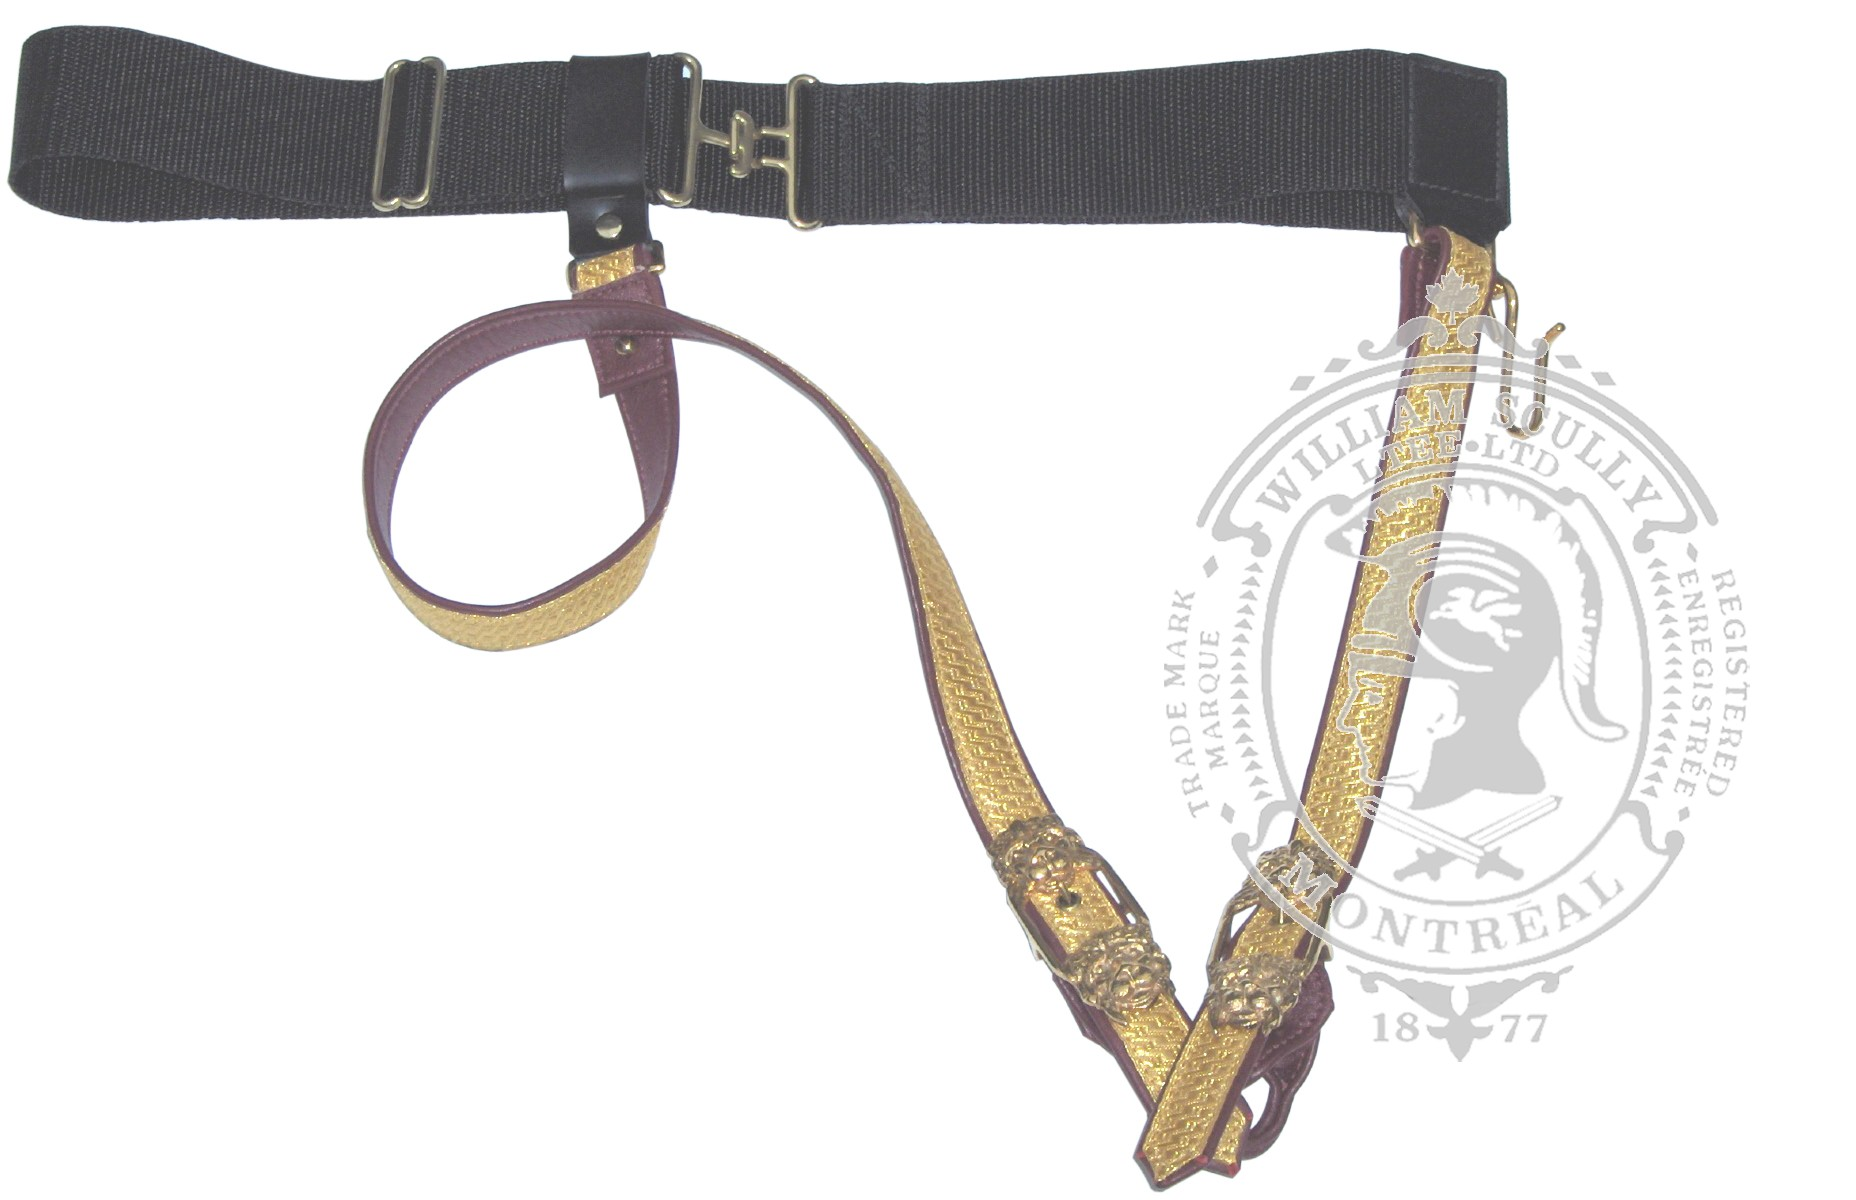 Patrol Sword Belt